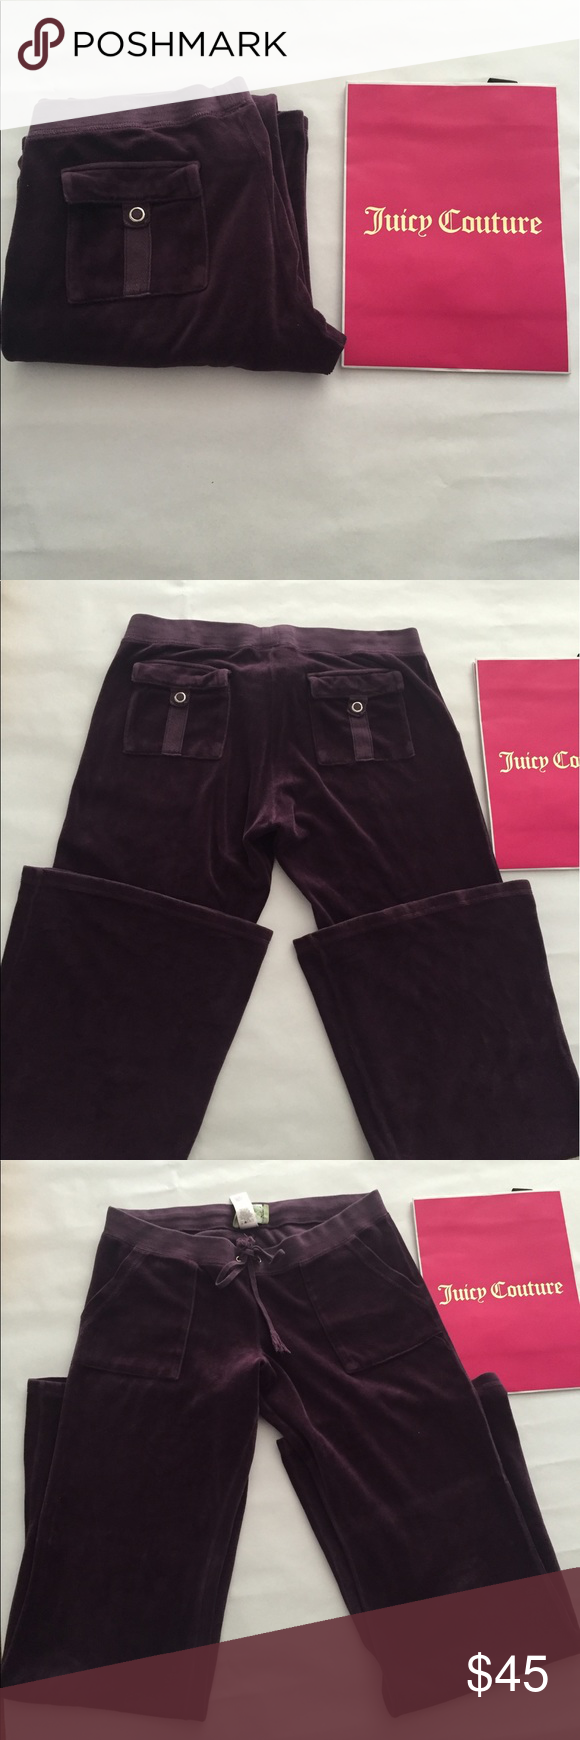 Juicy Couture velour lounge pants purple 🍒Sz L Oh how we missed you Juicy 🍒welcome back 🍒Juicy Couture made in USA purple  velour lounge pants with back pockets 🍒love back pockets 😍makes your butt look good 😍good condition see pics line from hanger appears I'll try washing them and see if it disappears doesn't take away from these like new lounge . Popular again ! Juicy Couture Pants Track Pants & Joggers